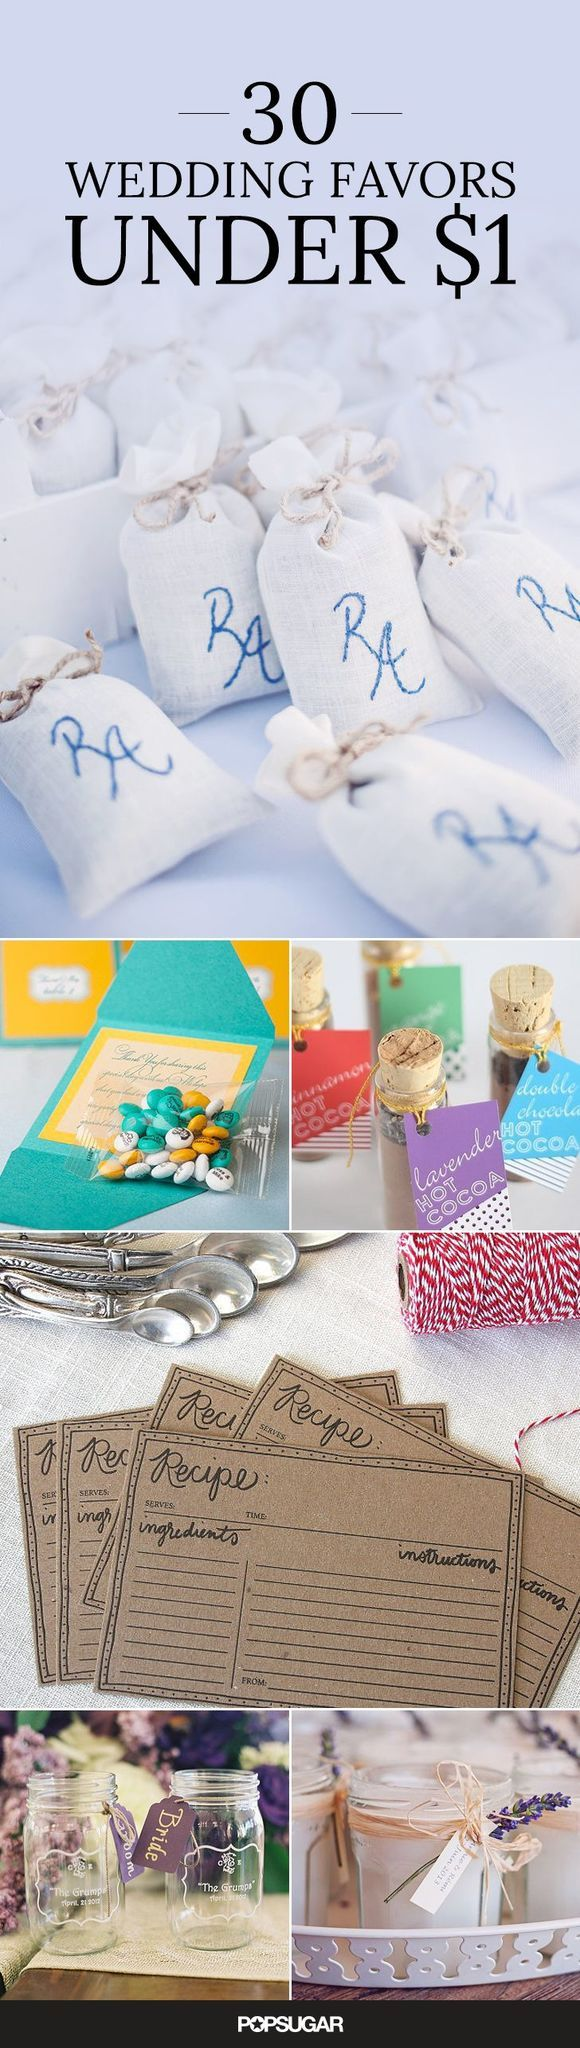 44 Wedding Favors You Won T Believe Cost Under 1 Inexpensive Wedding Favors Diy Wedding Favors Wedding Favors Cheap